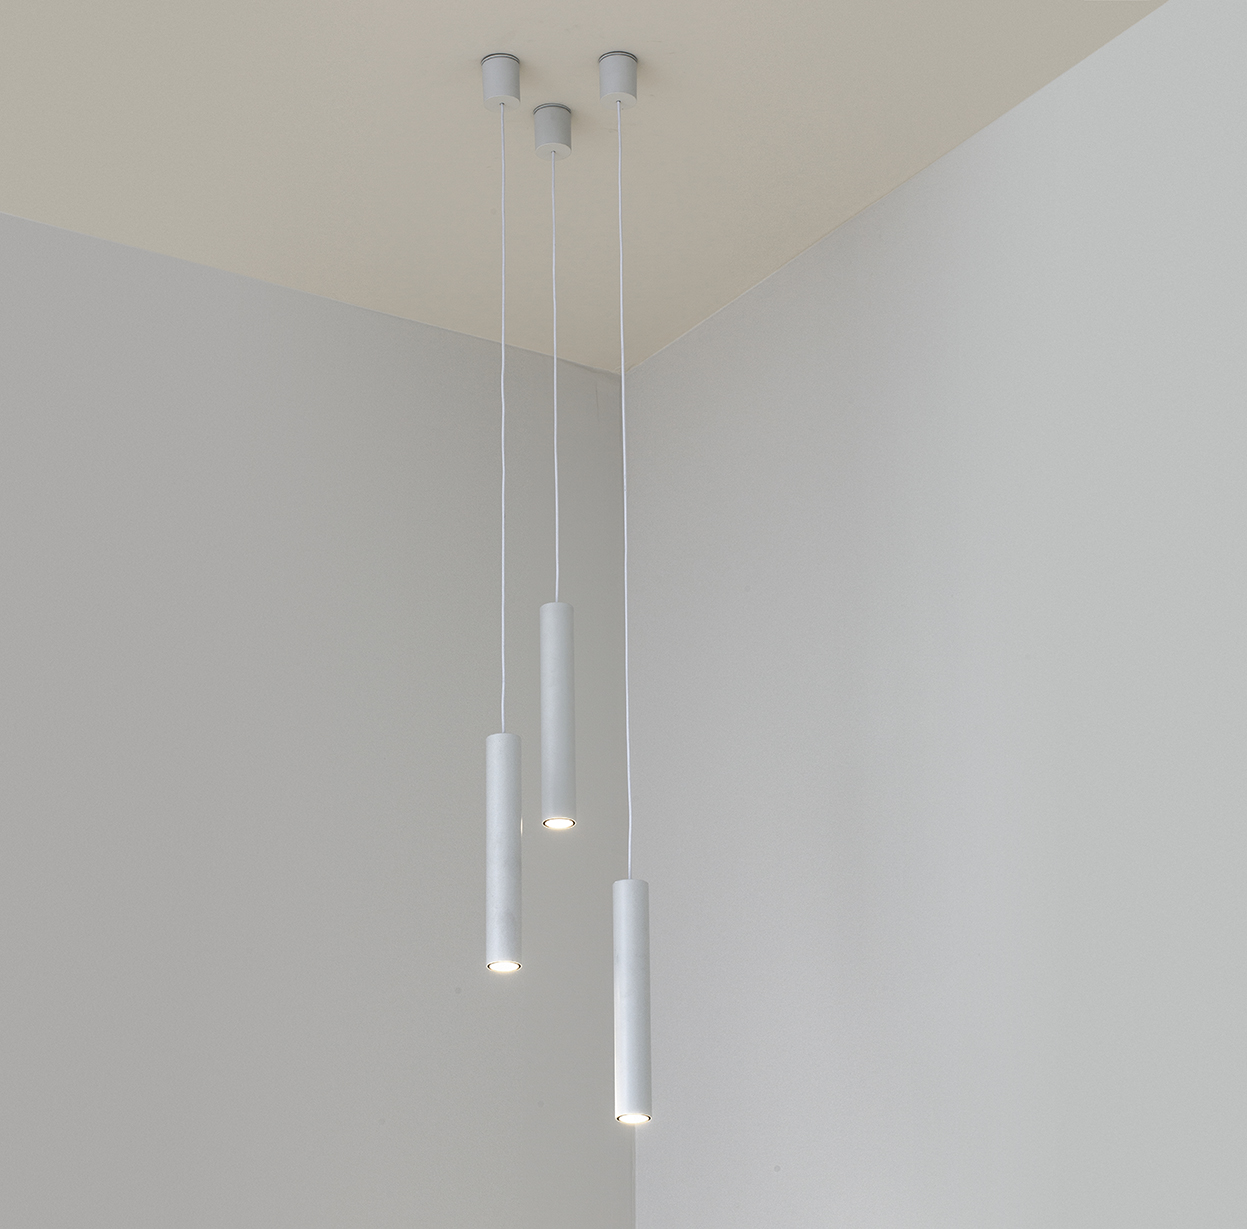 Find Me Suspension Commercial Pendant Lighting 2